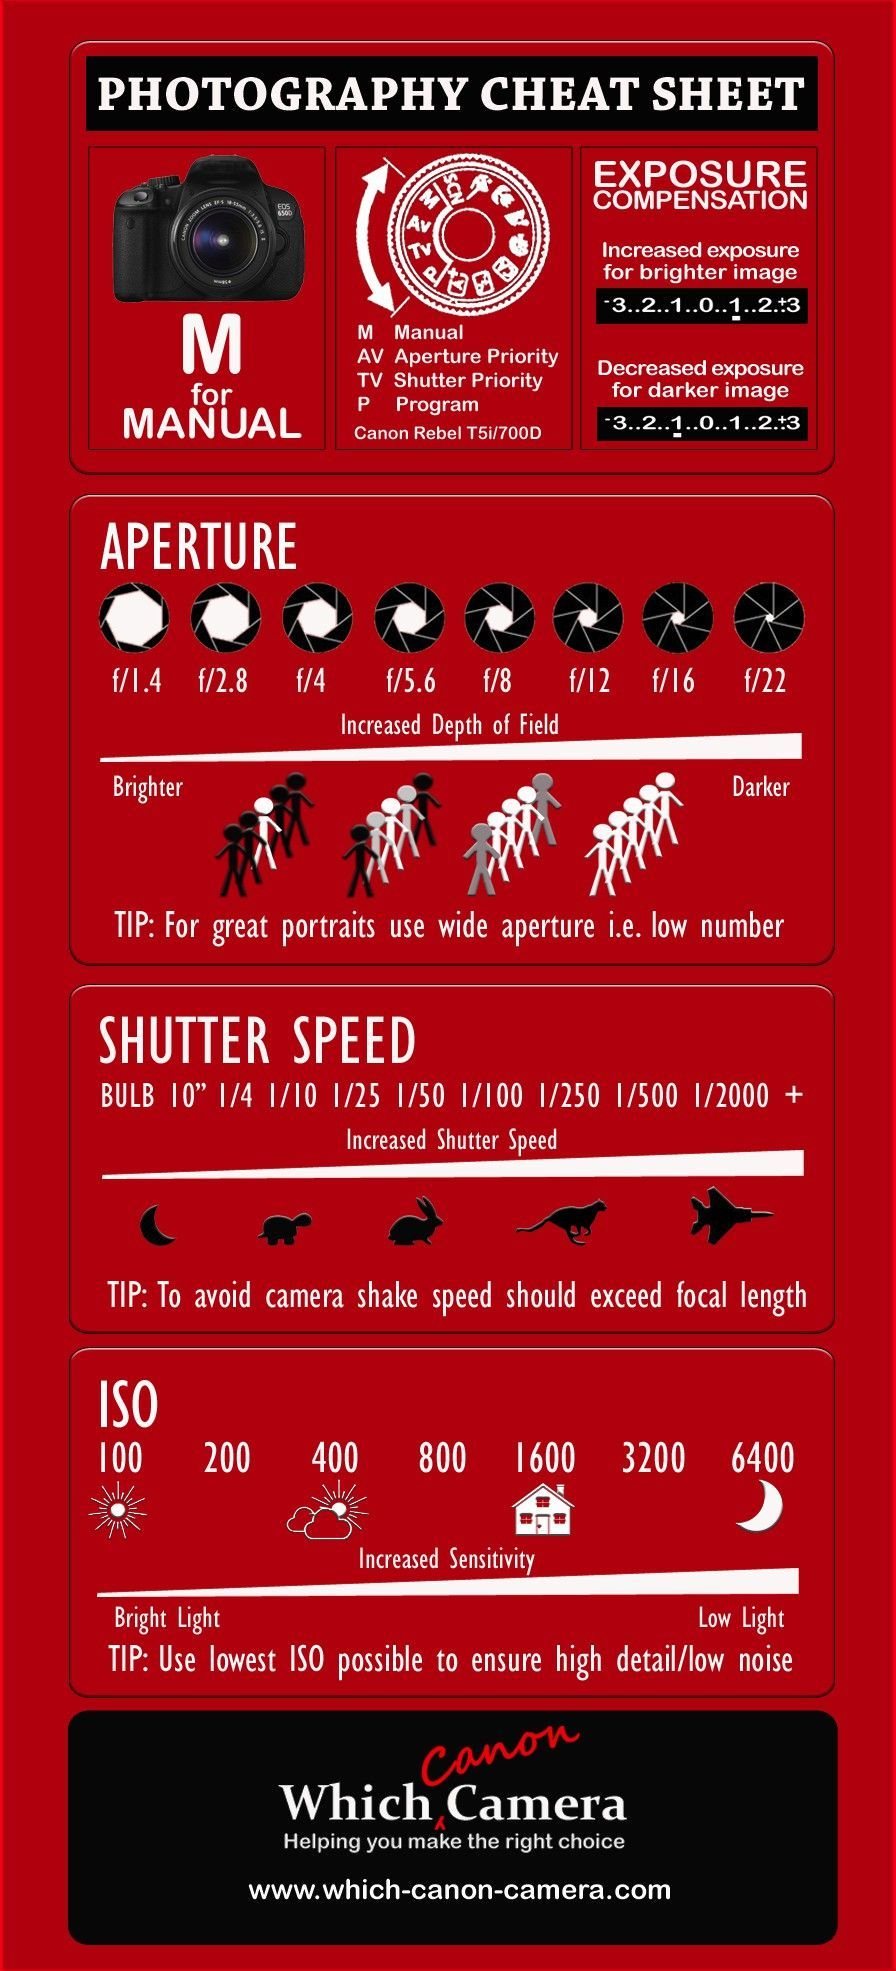 Cheat Sheets – Amazing Tips For Brilliant Photos! Photography Cheat Sheets - Amazing Tips For Brilliant Photos! - Hand Luggage Only - Travel, Food & Home BlogPhotography Cheat Sheets - Amazing Tips For Brilliant Photos! - Hand Luggage Only - Travel, Food & Home Blog